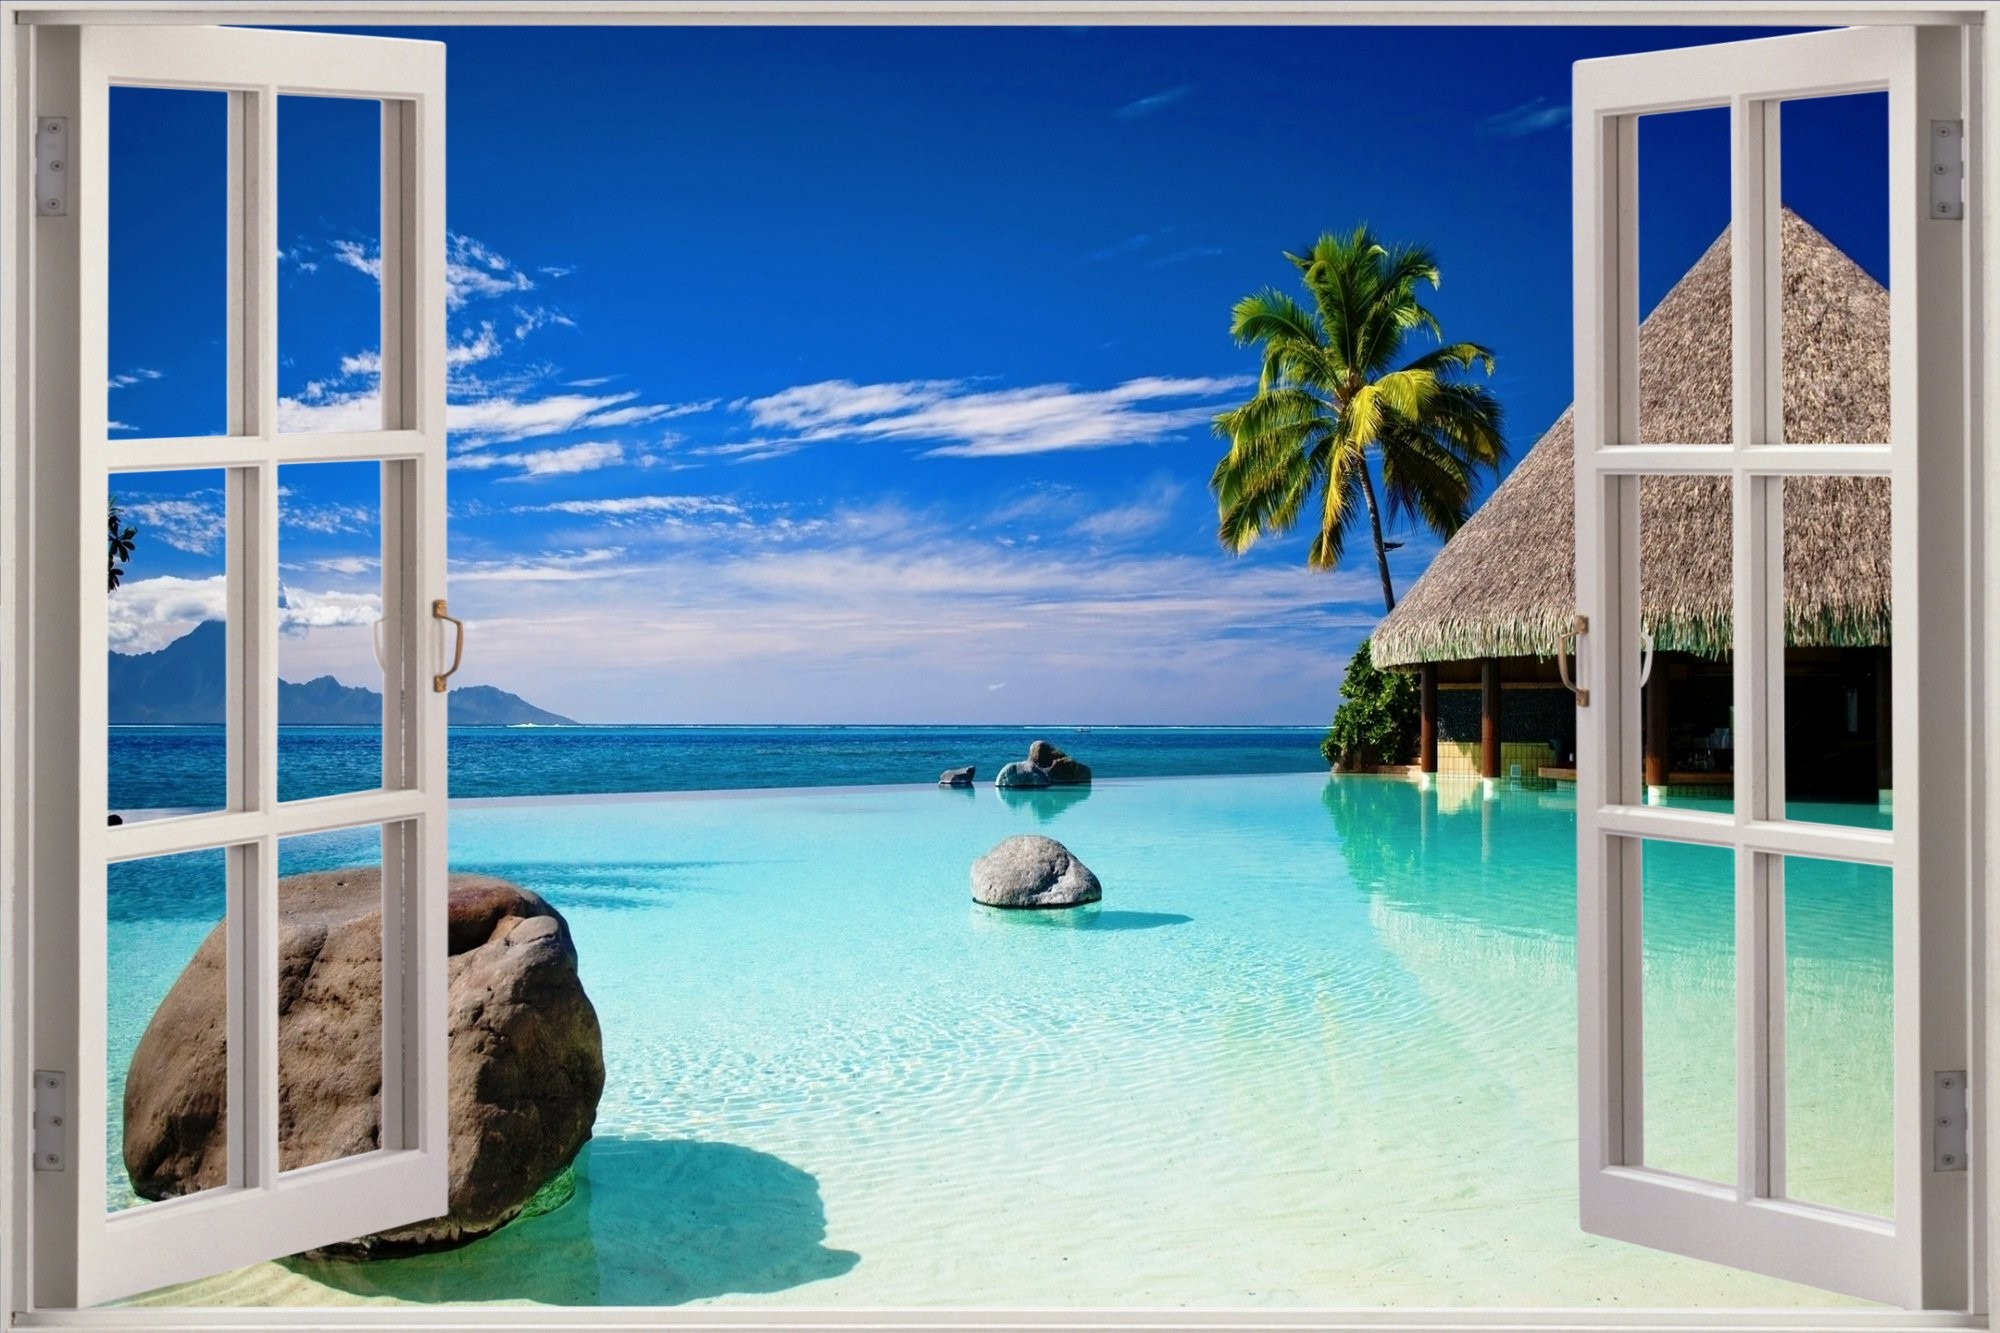 Window Wallpaper 183 ① Download Free Stunning Hd Wallpapers